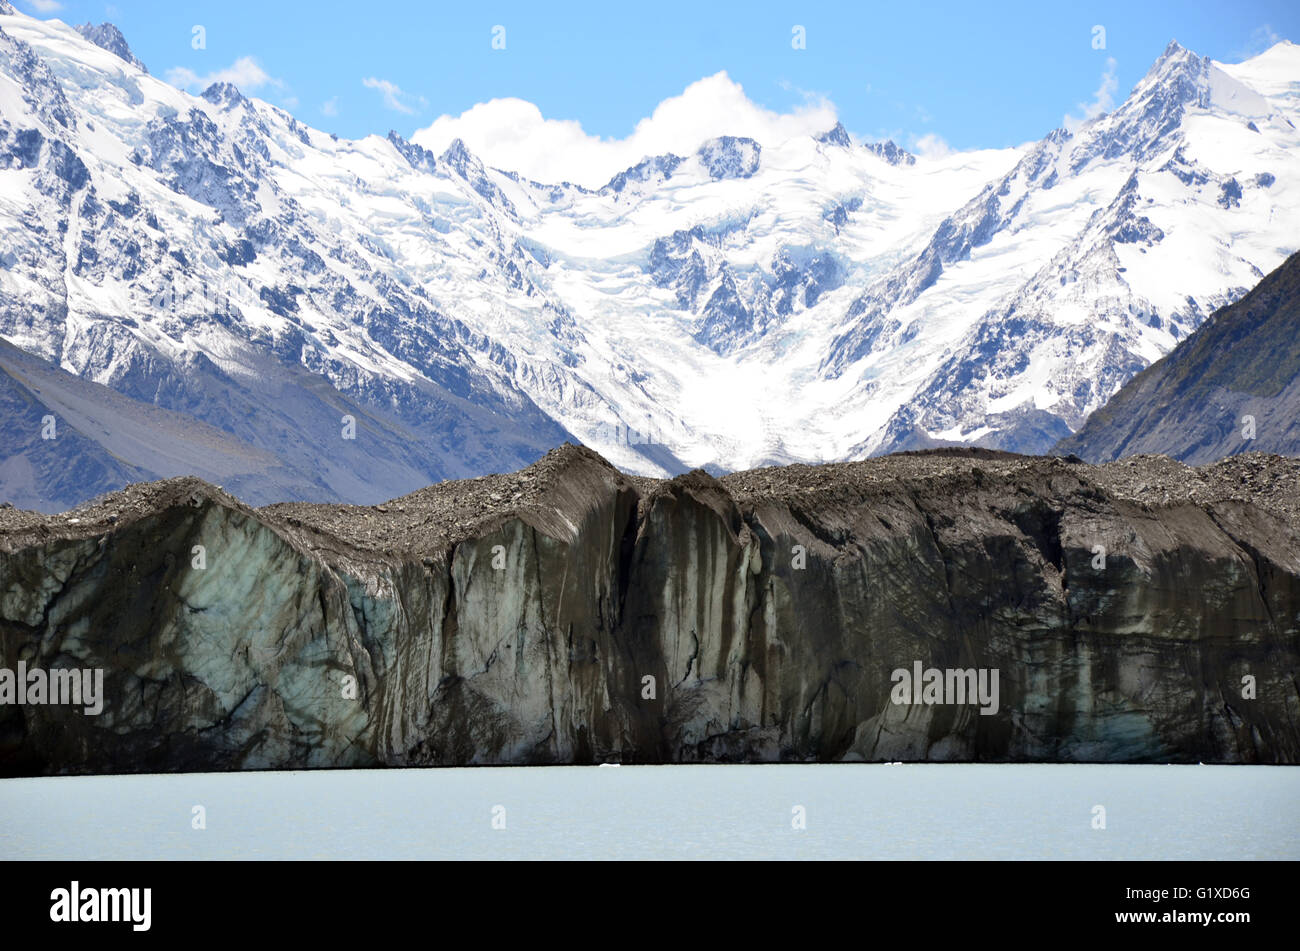 Glacier on a glacial lake at the base of snow covered mountains - Stock Image